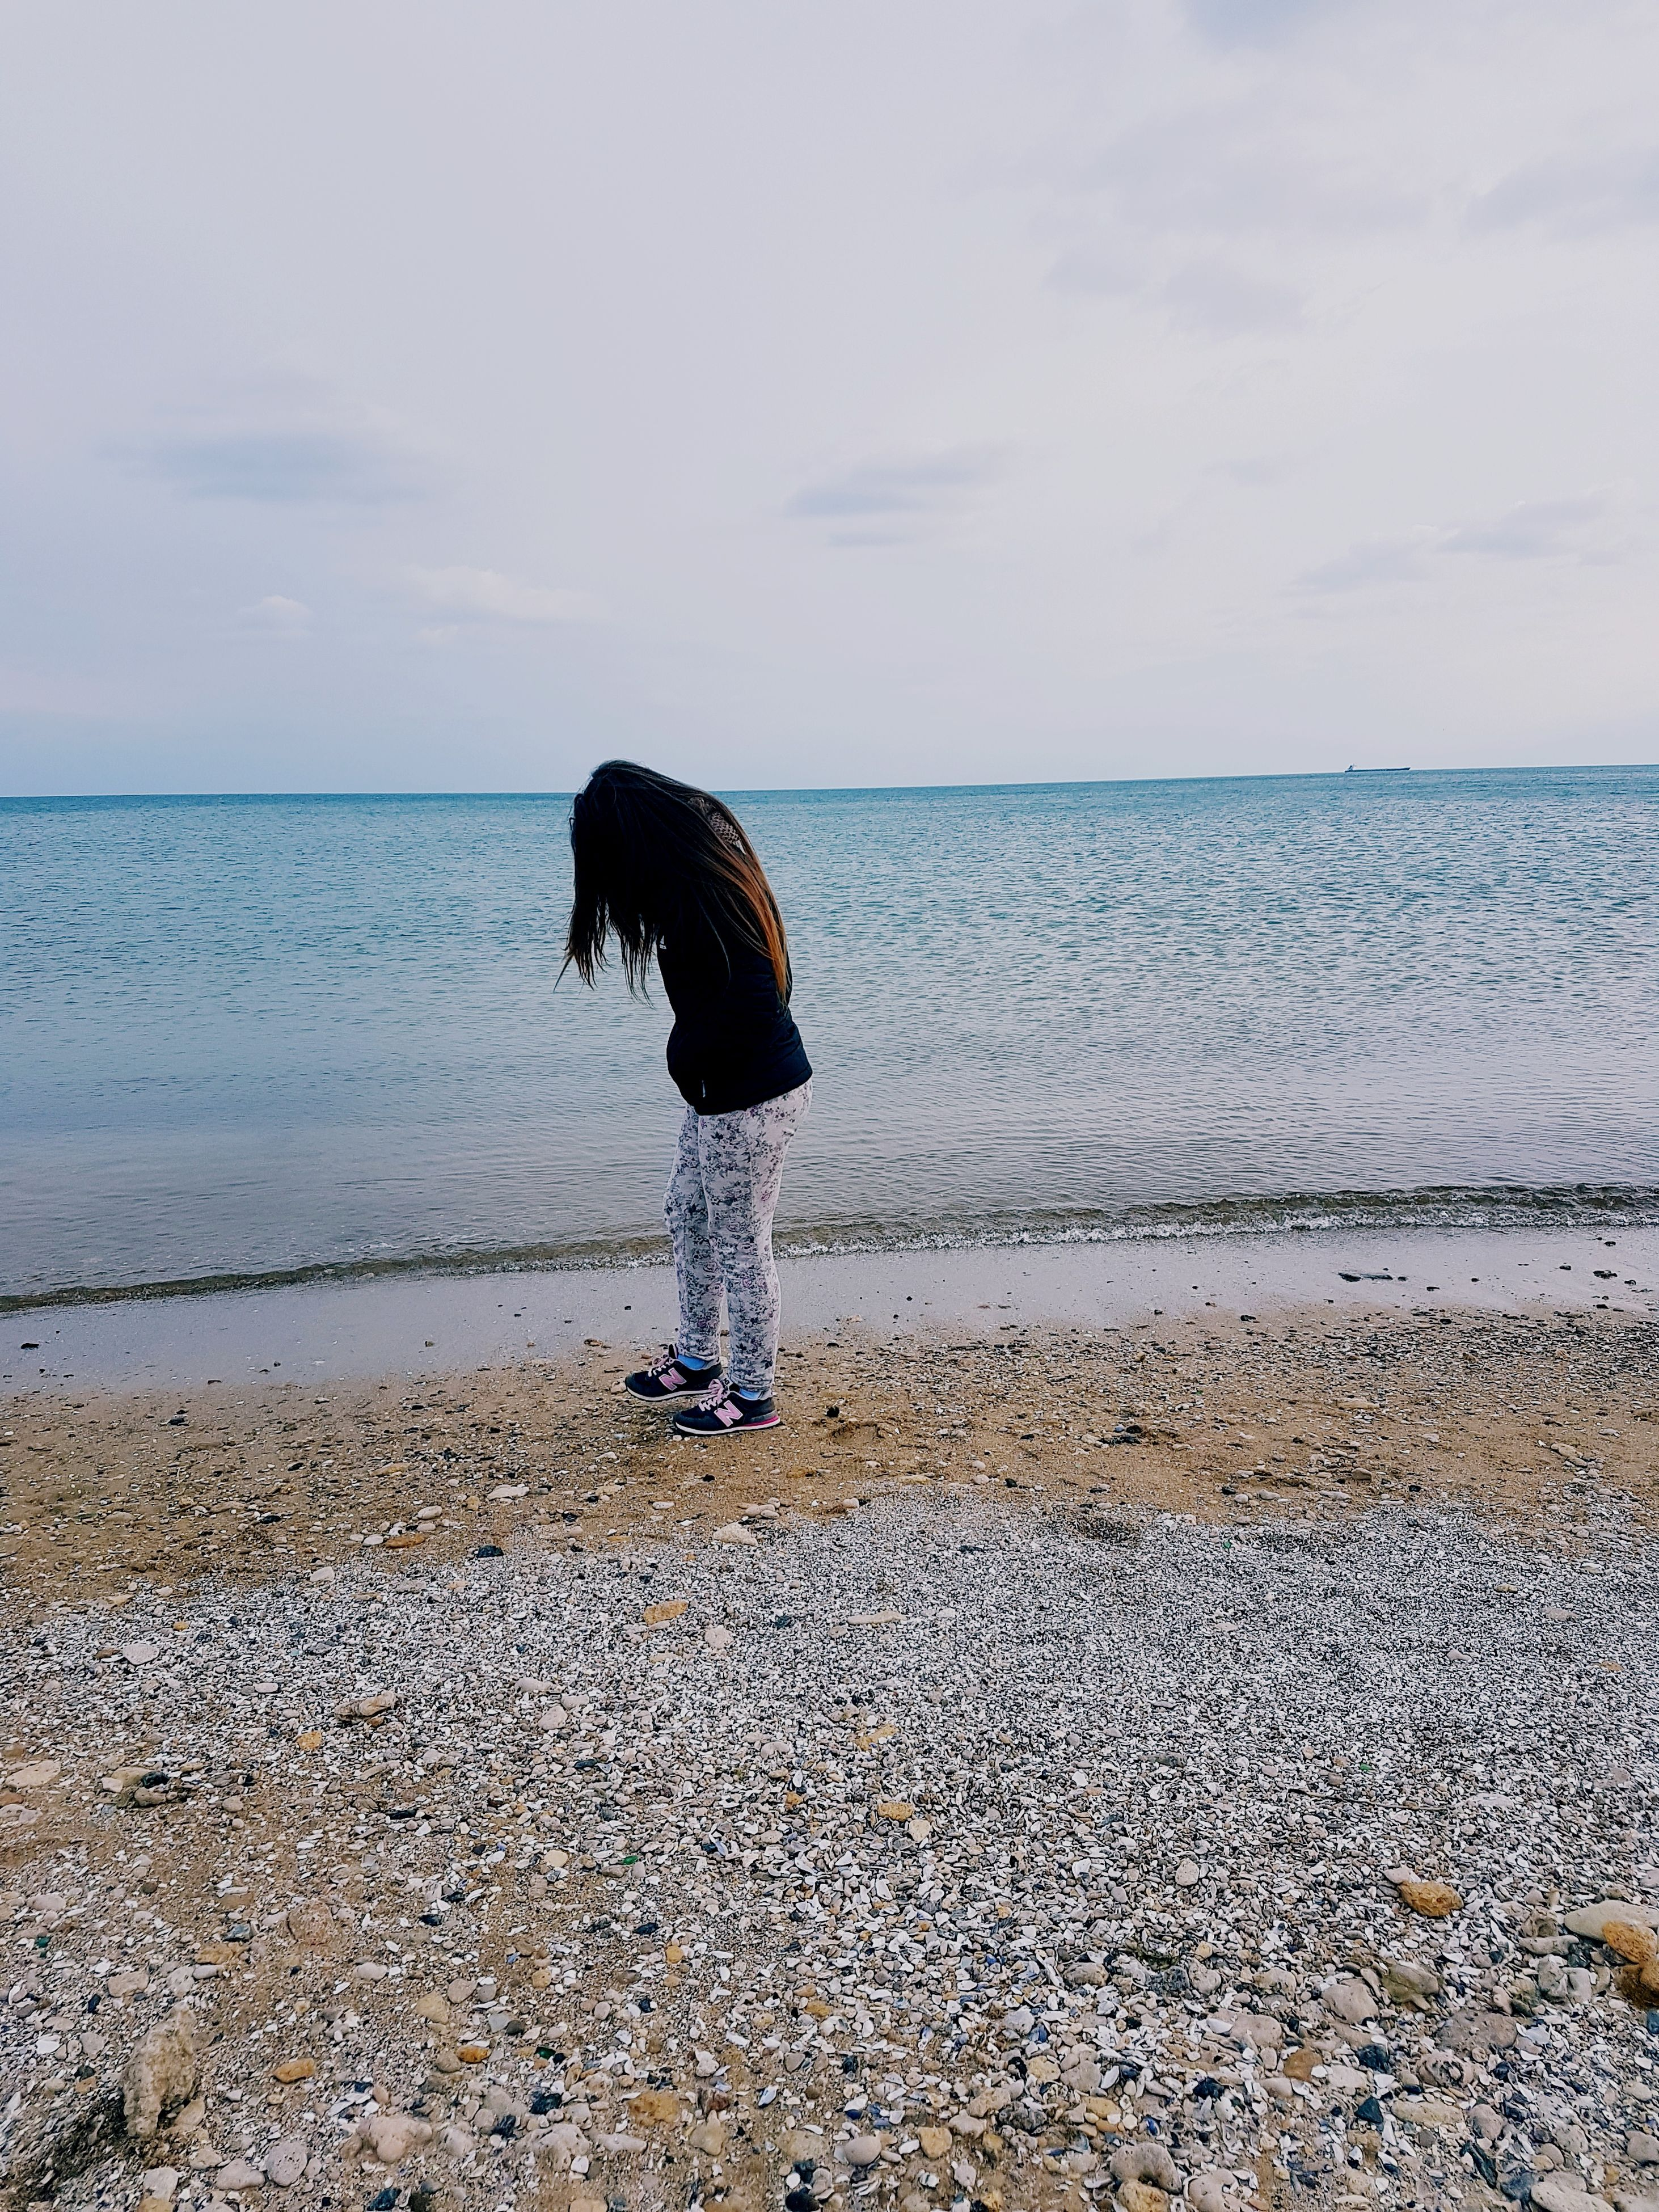 sky, sea, water, beach, nature, horizon over water, outdoors, scenics, beauty in nature, clear sky, no people, animal themes, day, mammal